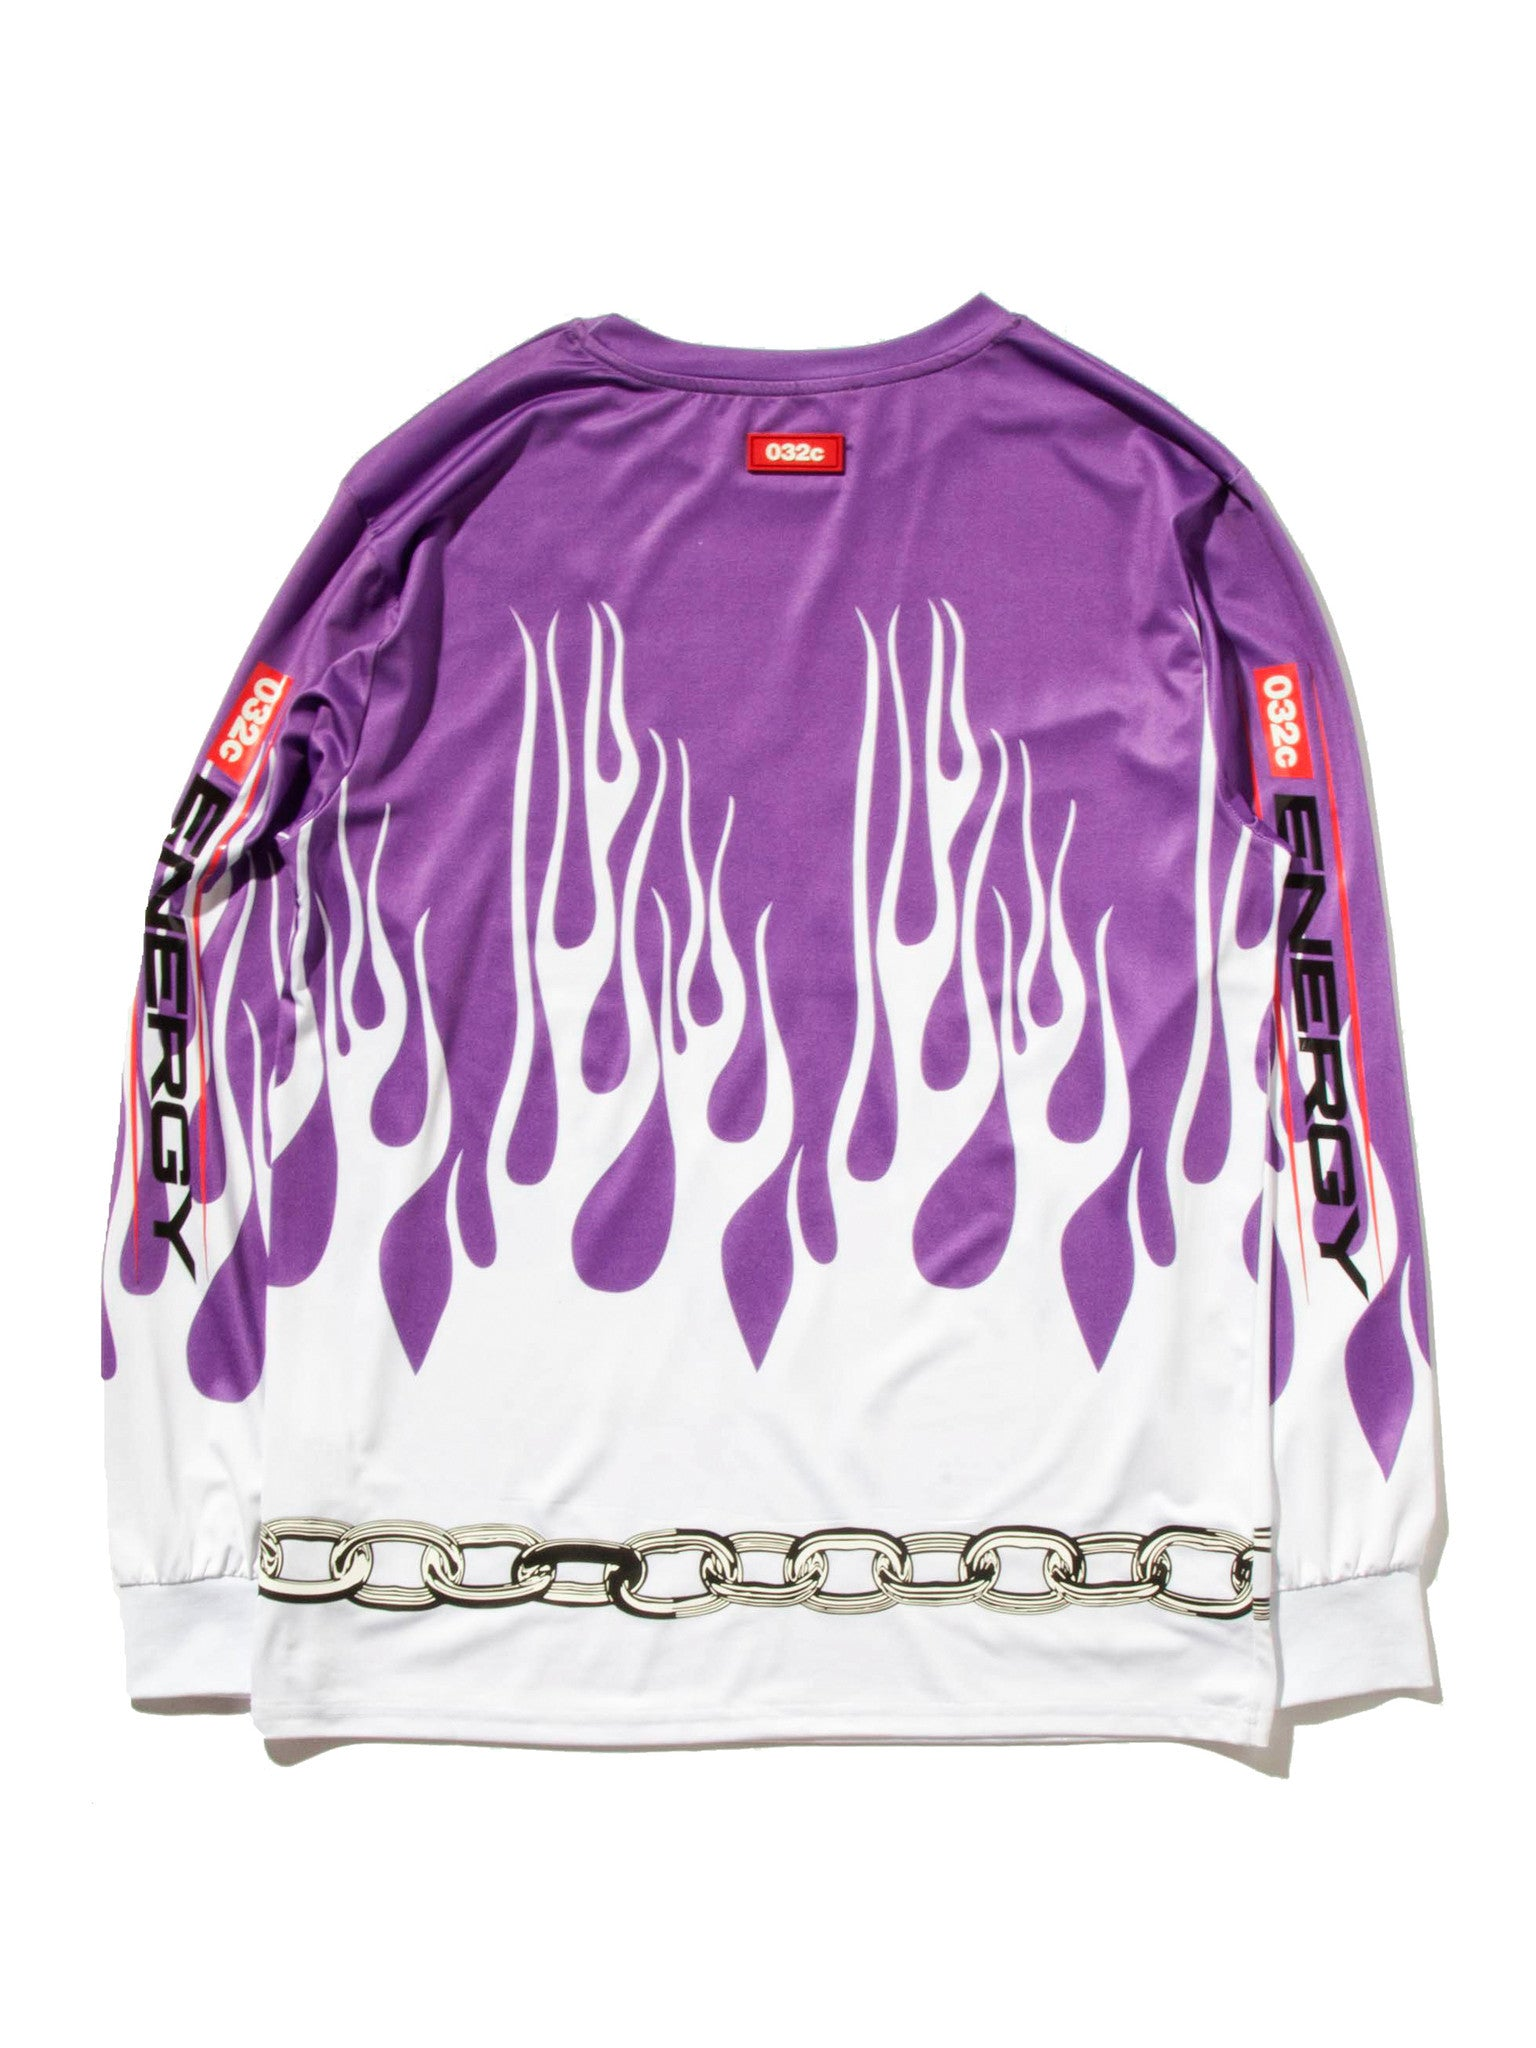 XXL Motocross Long Sleeve Flames T-Shirt 6